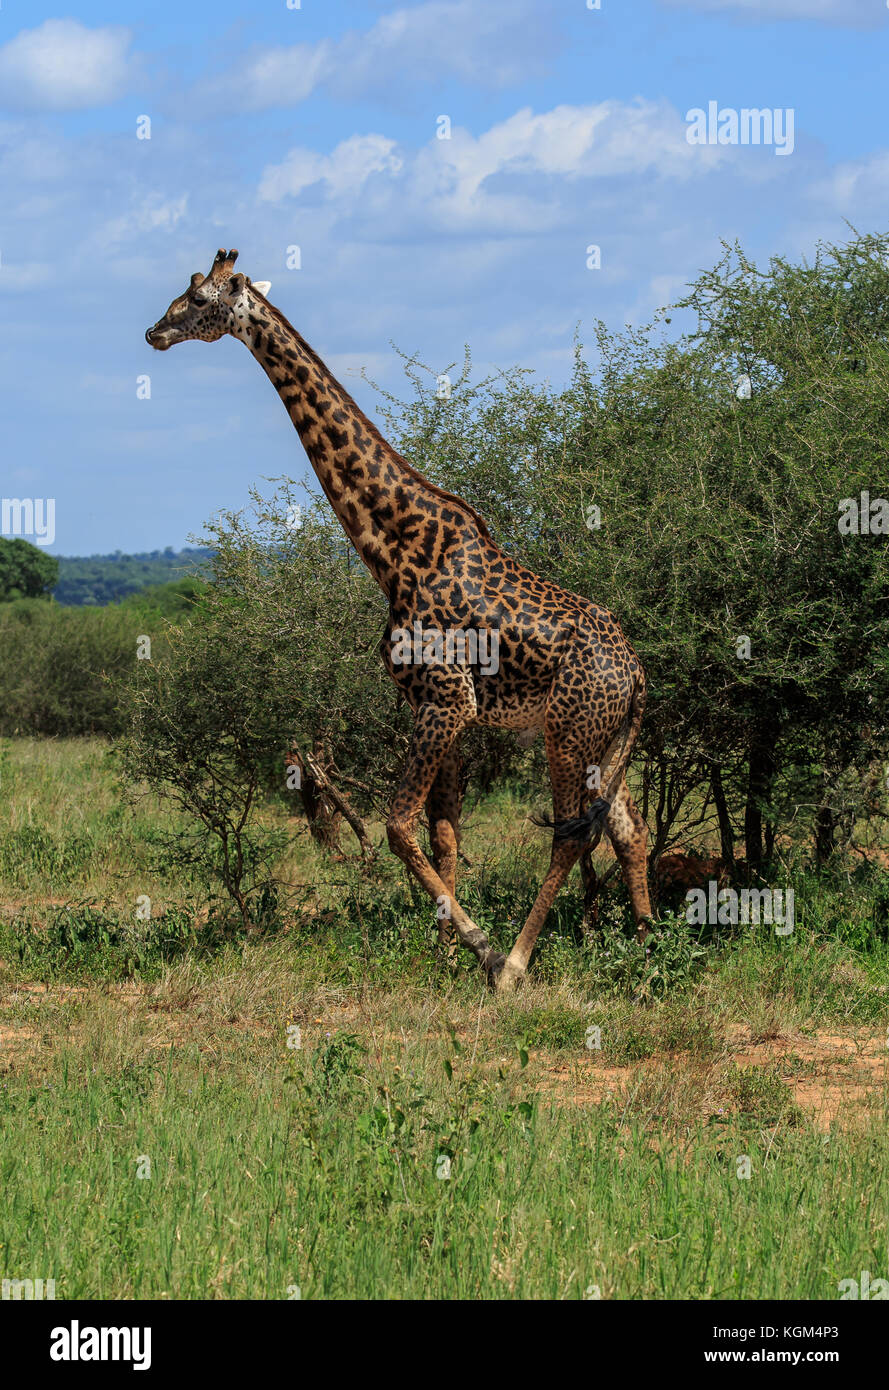 A male Masai Giraffe towering above the bushes - Stock Image